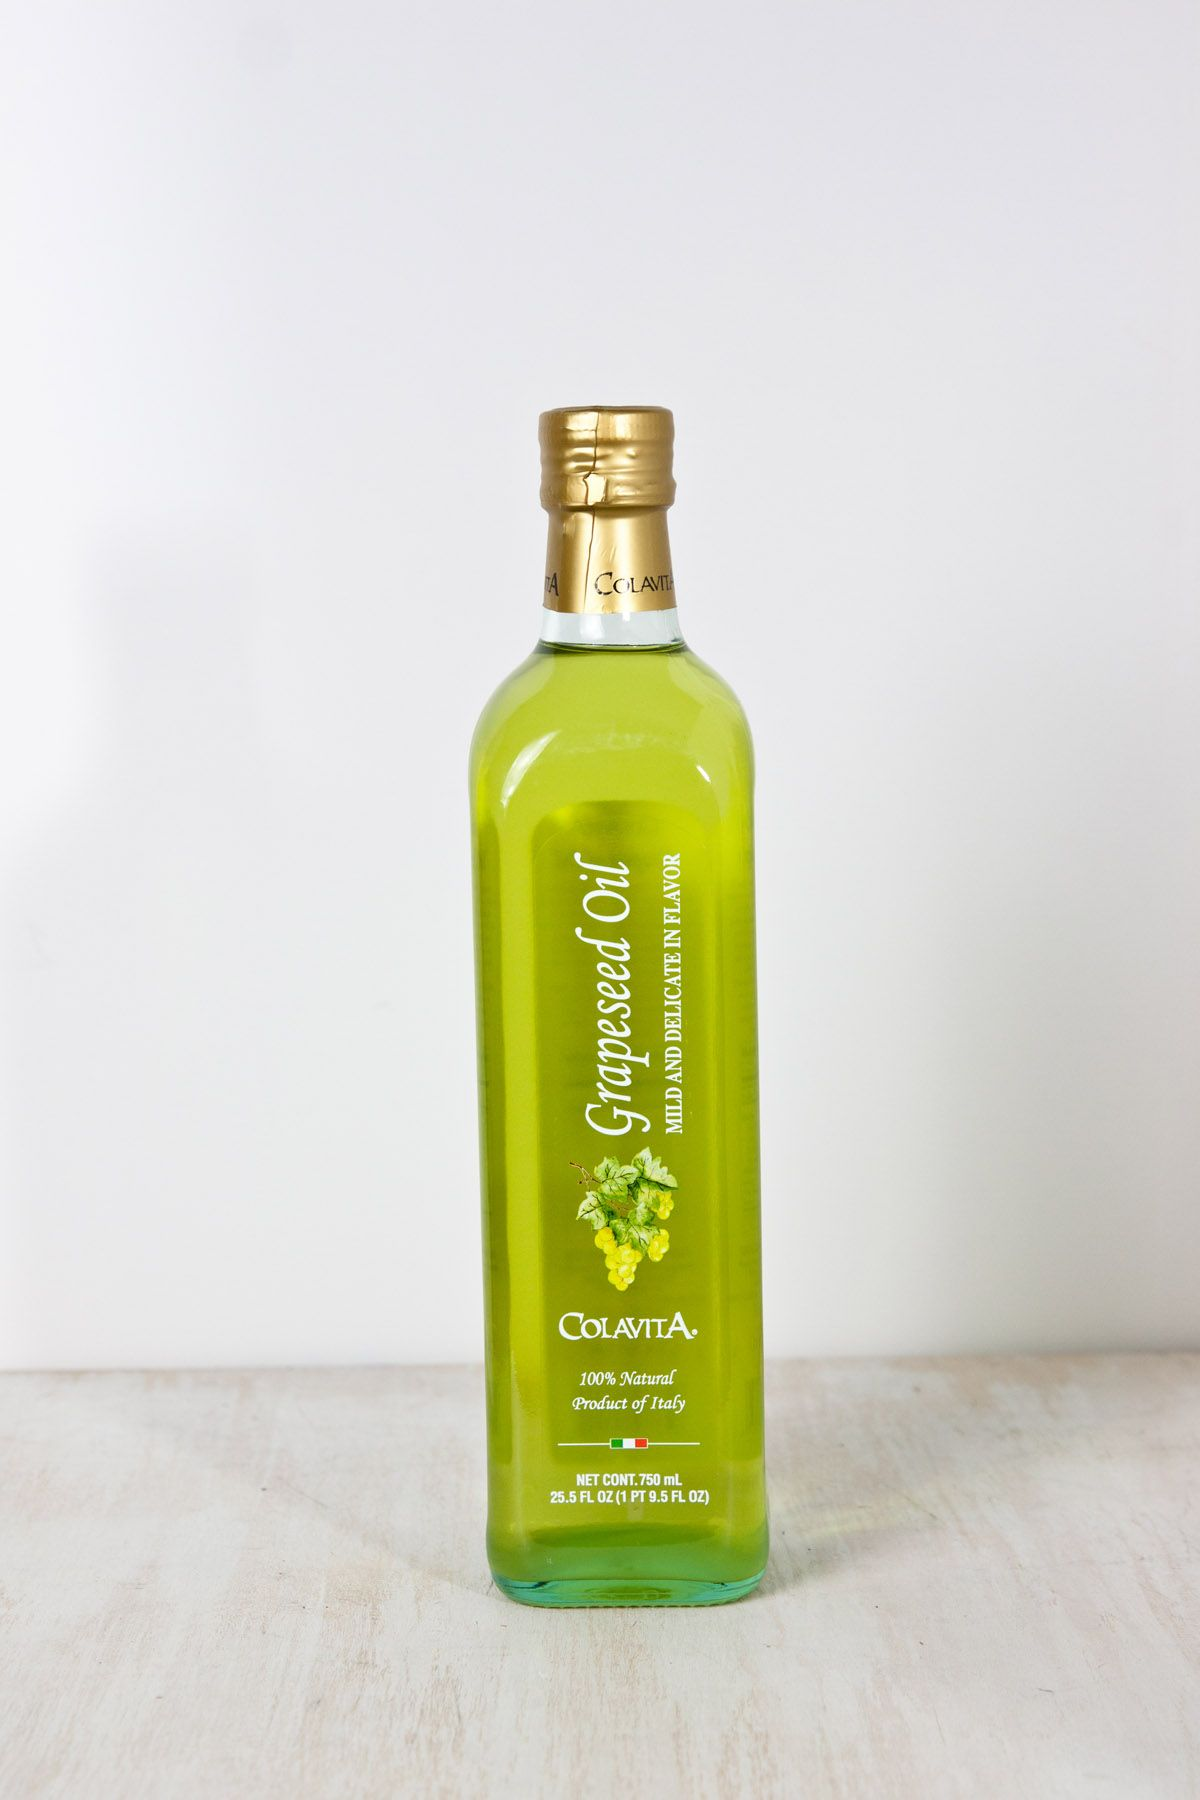 Colavita grapeseed oil 255 floz glass bottle with